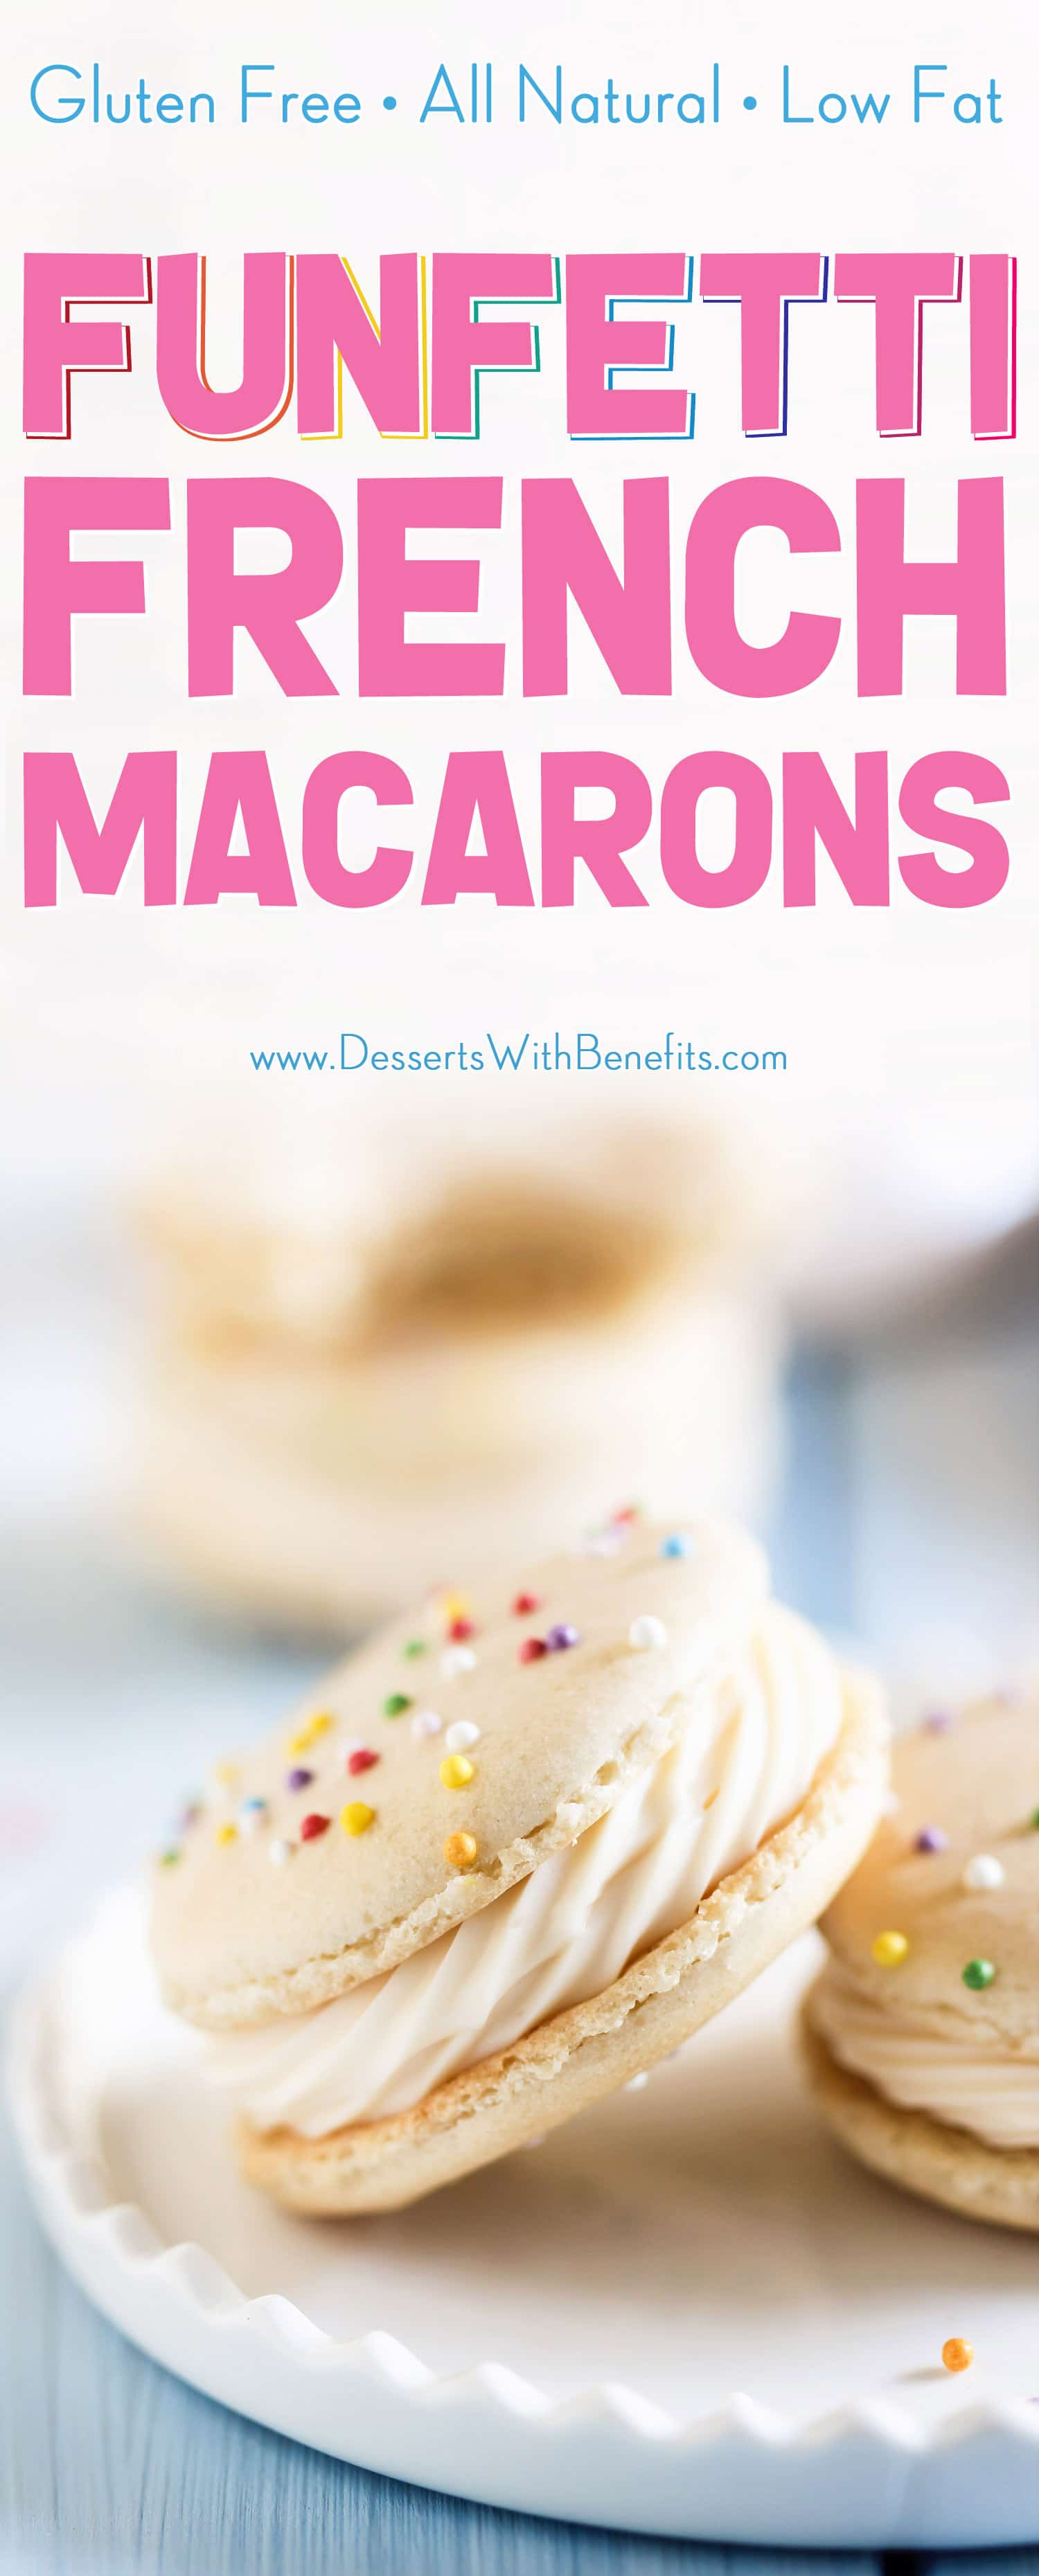 (How to make French Macarons) These bakery-worthy Funfetti French Macarons are adorable, bite-sized, sweet perfection! You'd never know they're made without white sugar, artificial flavorings, and artificial food dyes. These are all natural, low fat, and gluten free. Perfect for birthdays, parties, and celebrations.